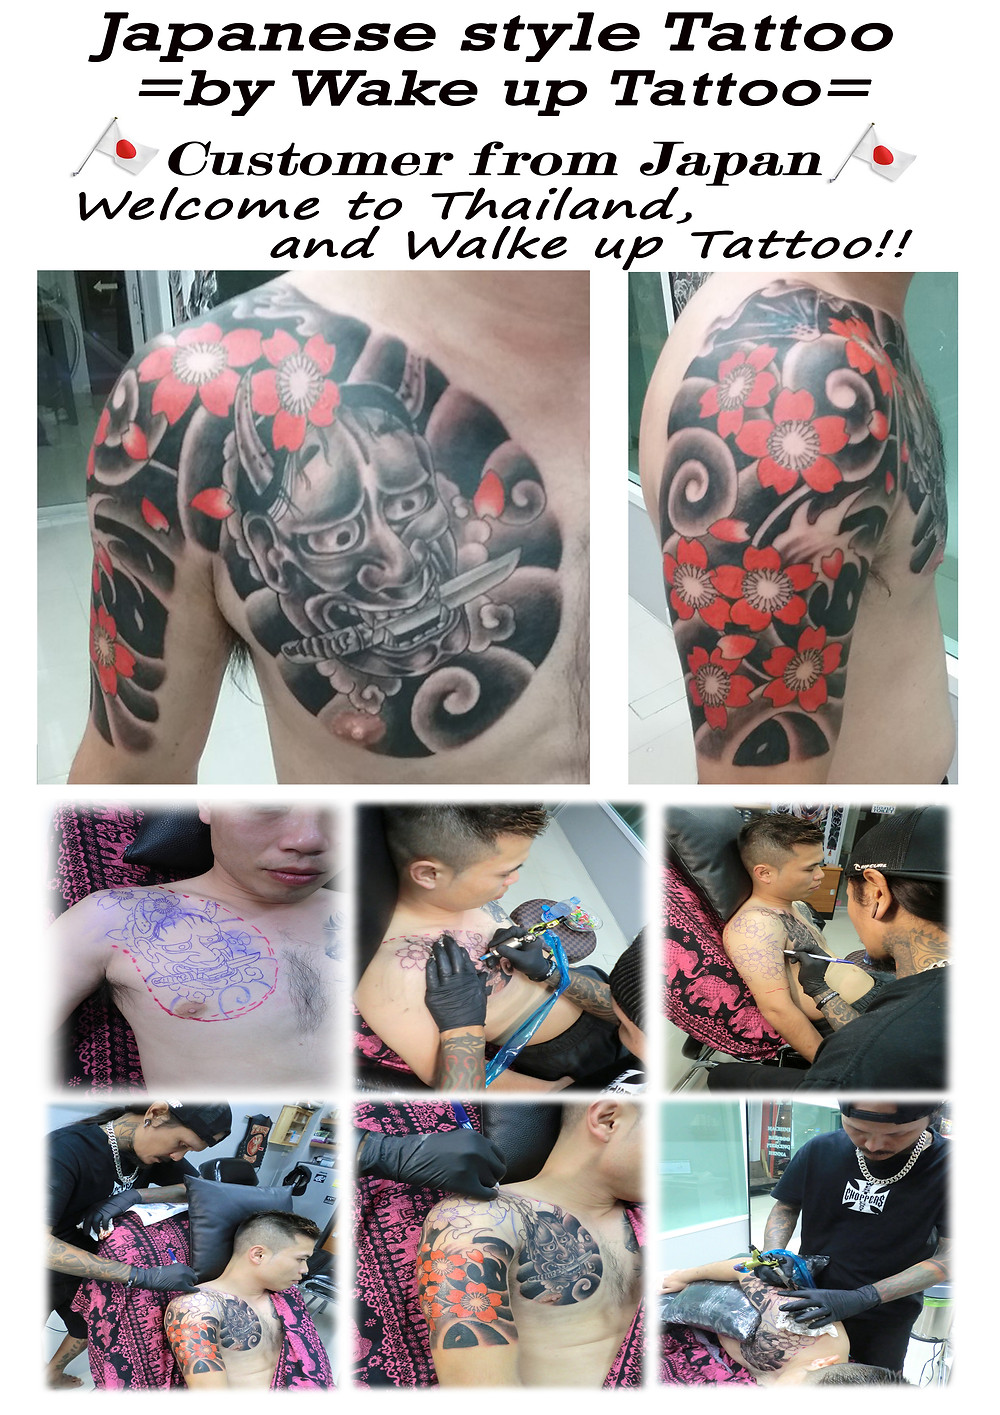 We are Back by Wake up Tattoo Phuket